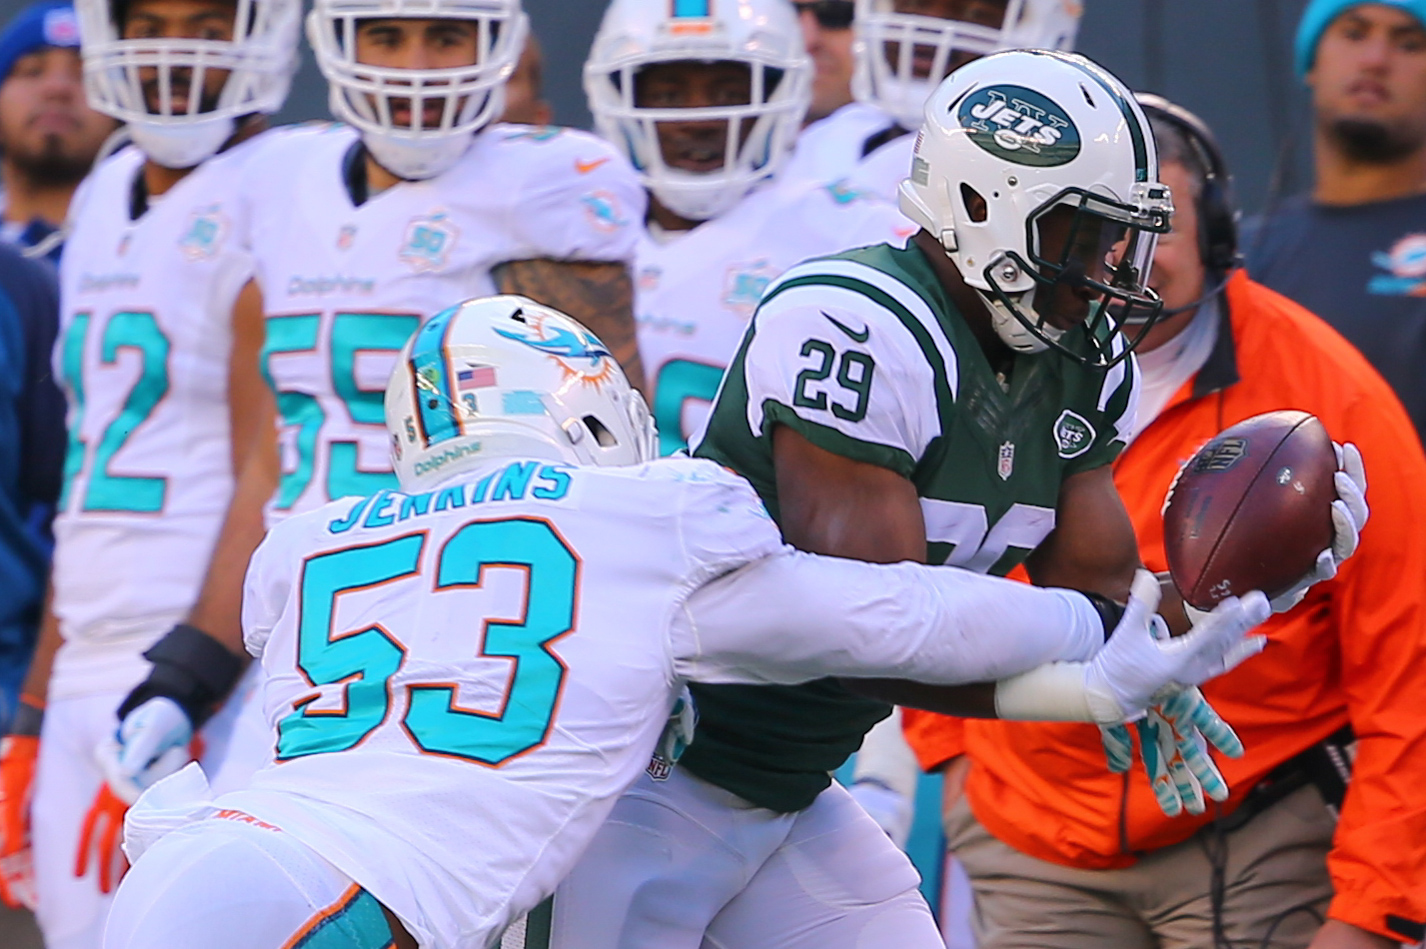 8961856-nfl-miami-dolphins-at-new-york-jets